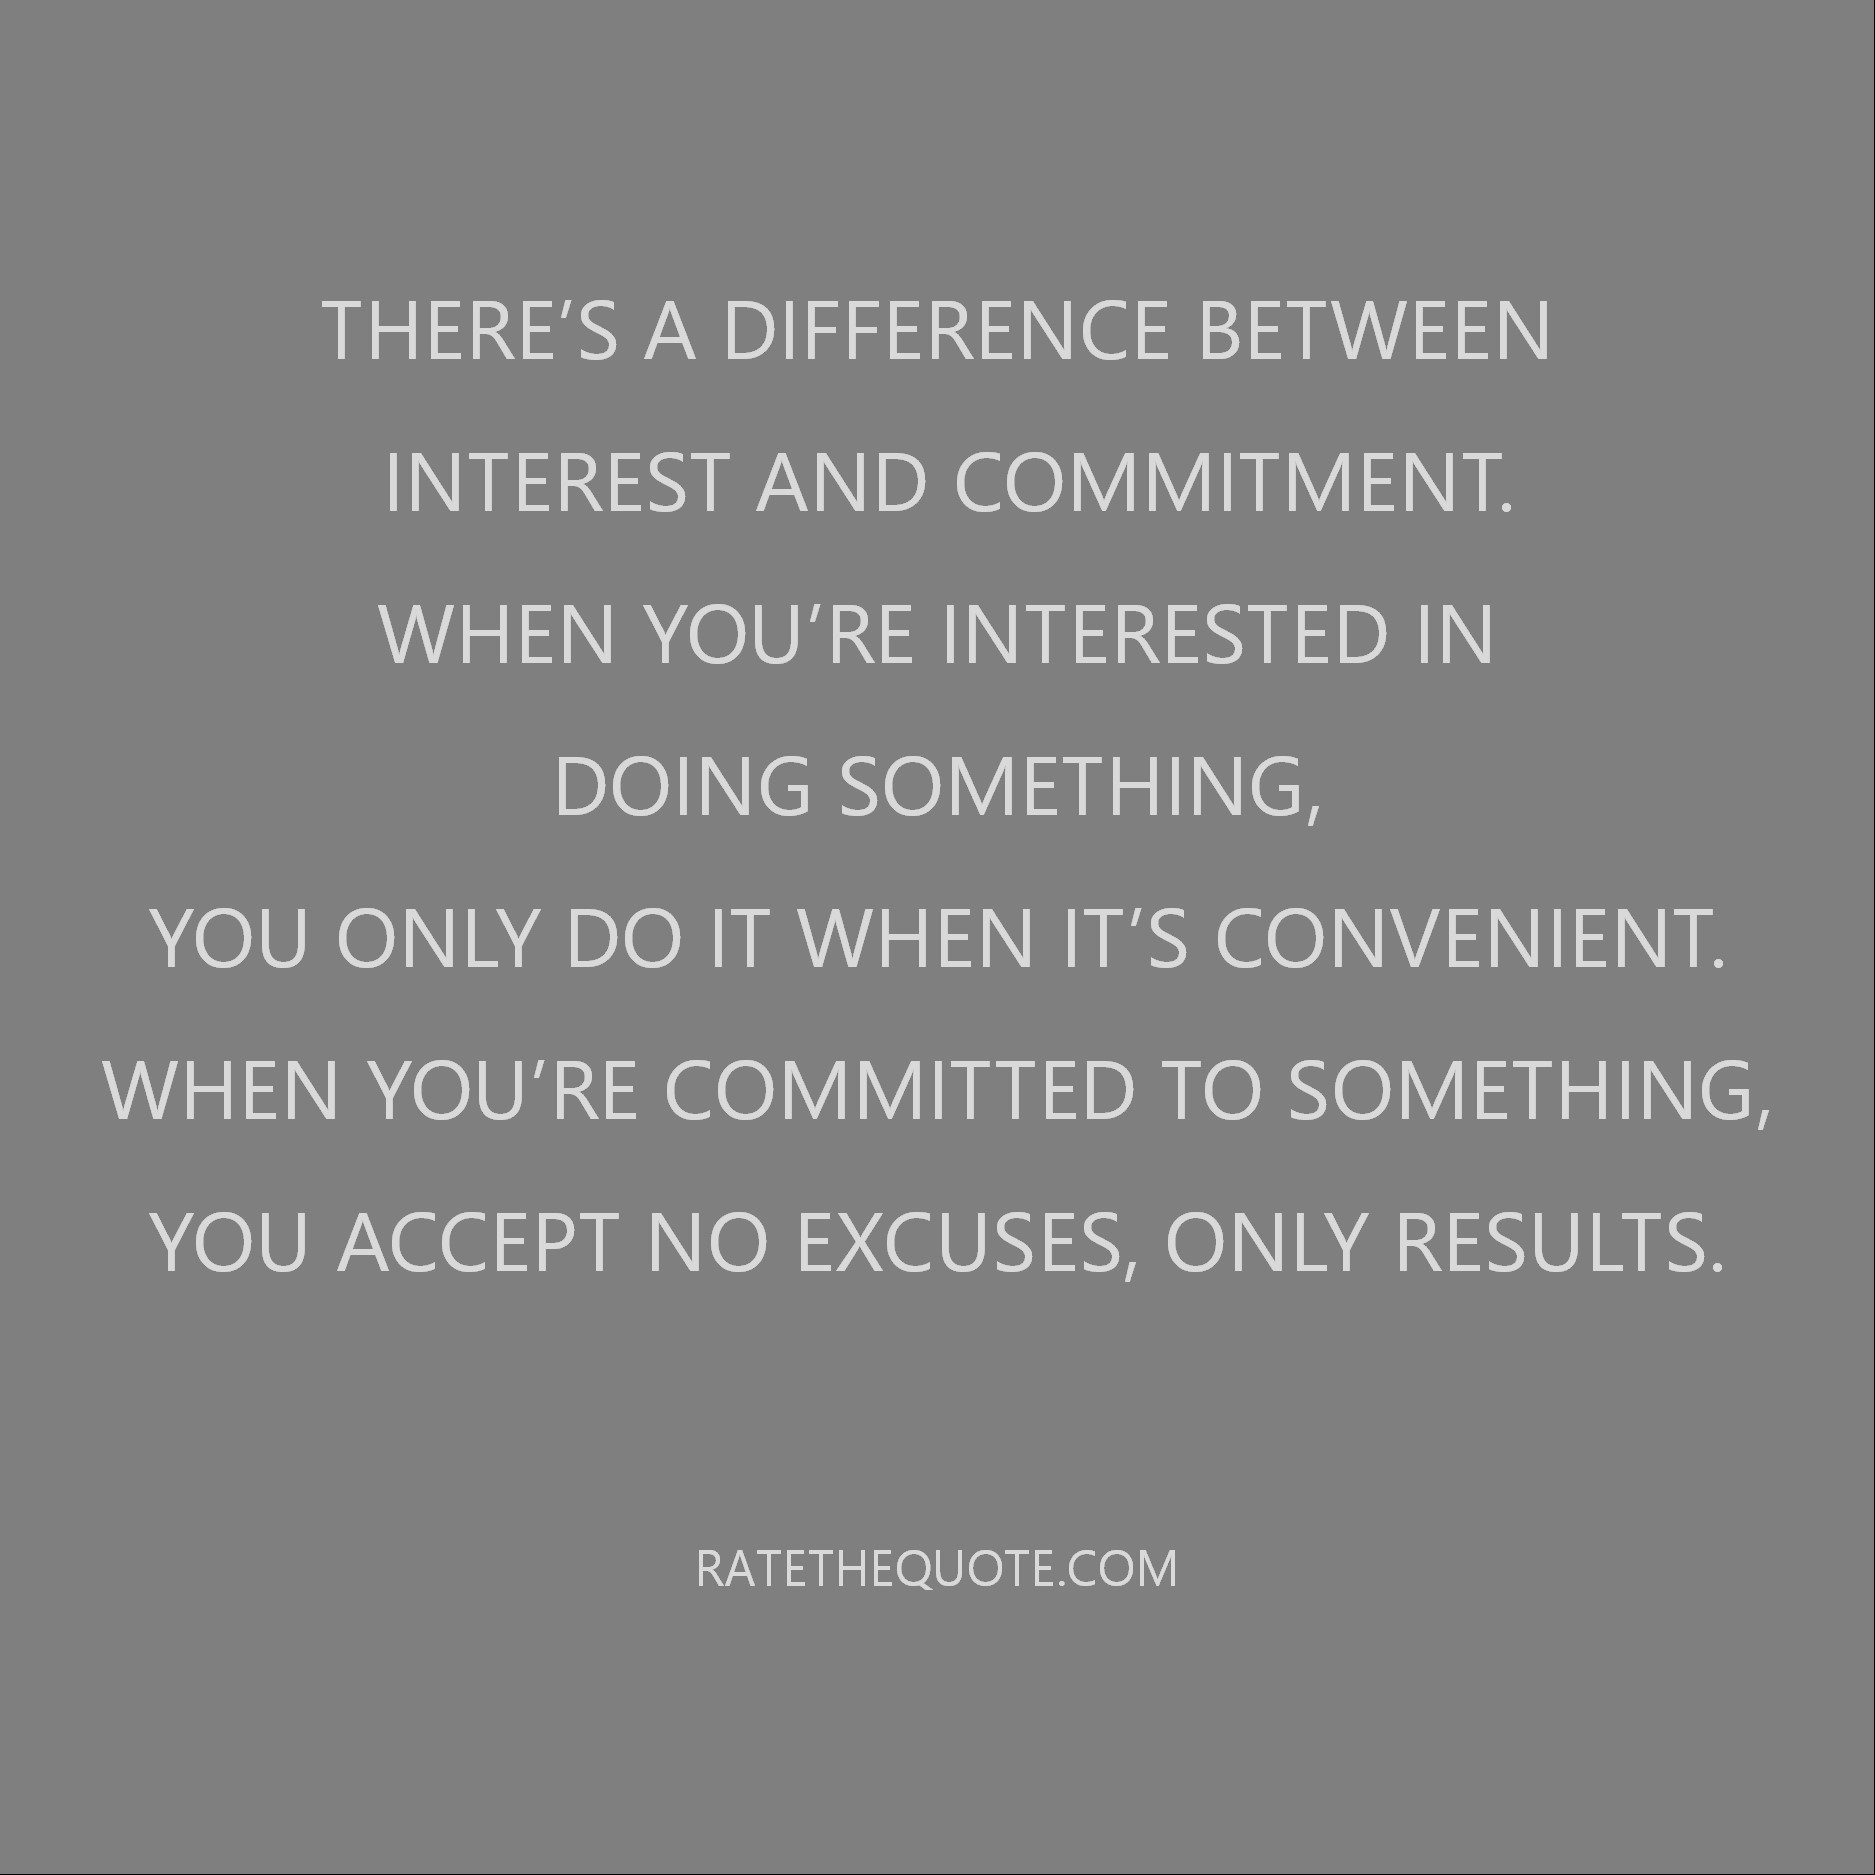 There's a difference between interest and commitment. When you're interested in doing something, you only do it when it's convenient. When you're committed to something, you accept no excuses, only results.